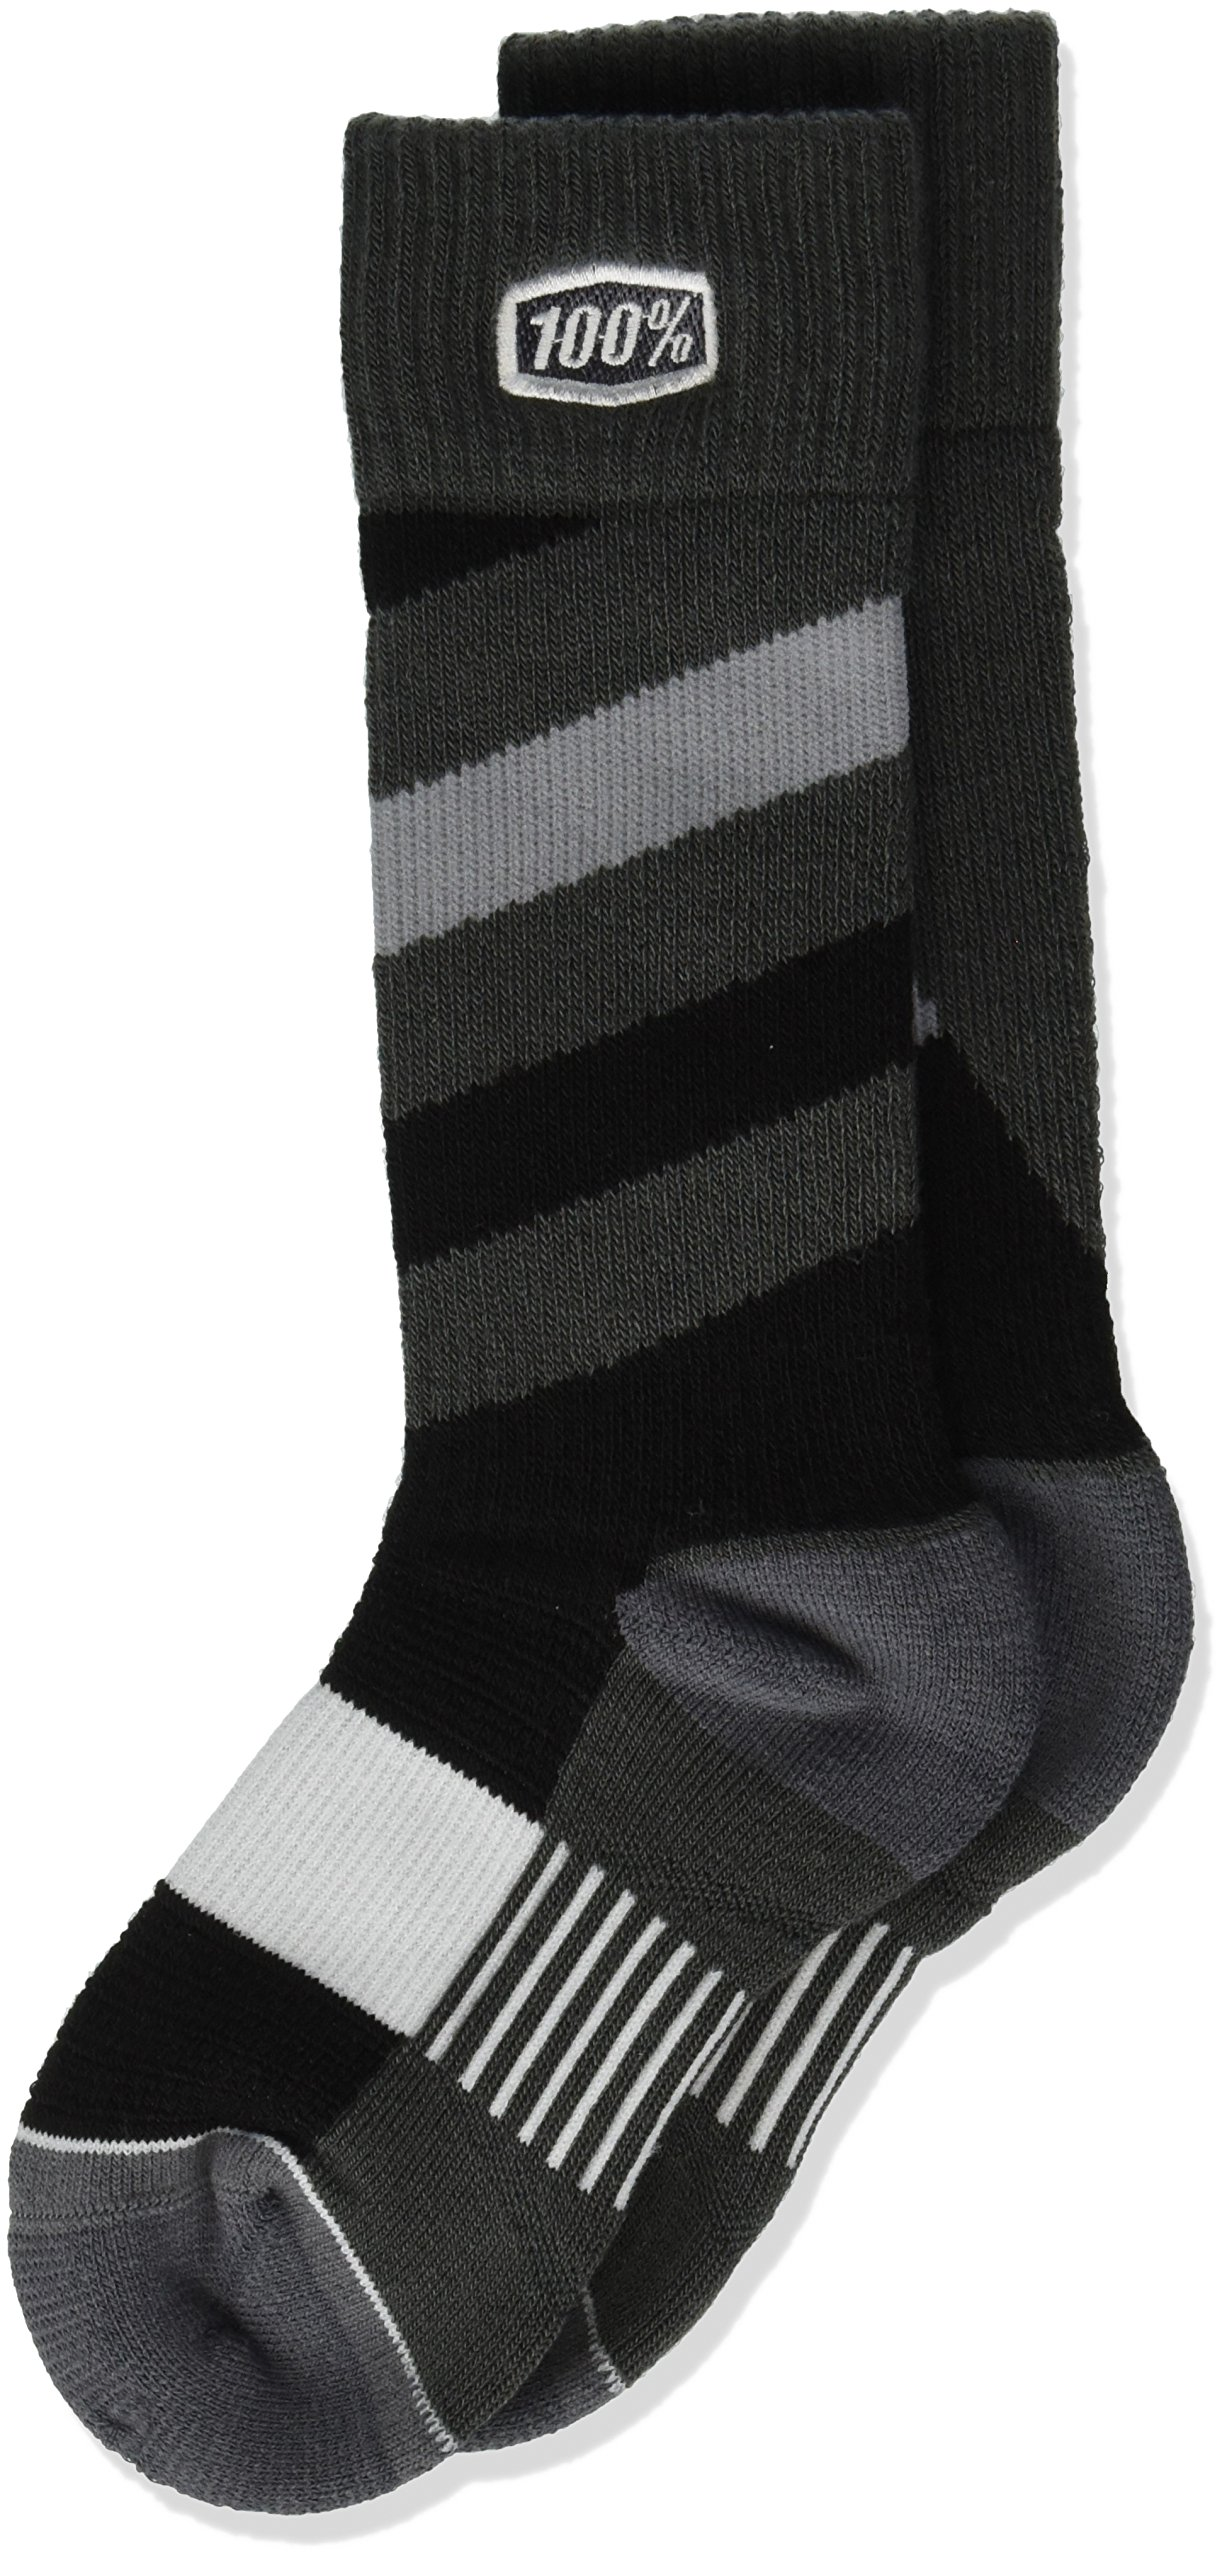 100% 24107-001-17 Unisex-Child Youth Torque 8'' Mid-Calf Riding Socks (Black,Small/Medium)